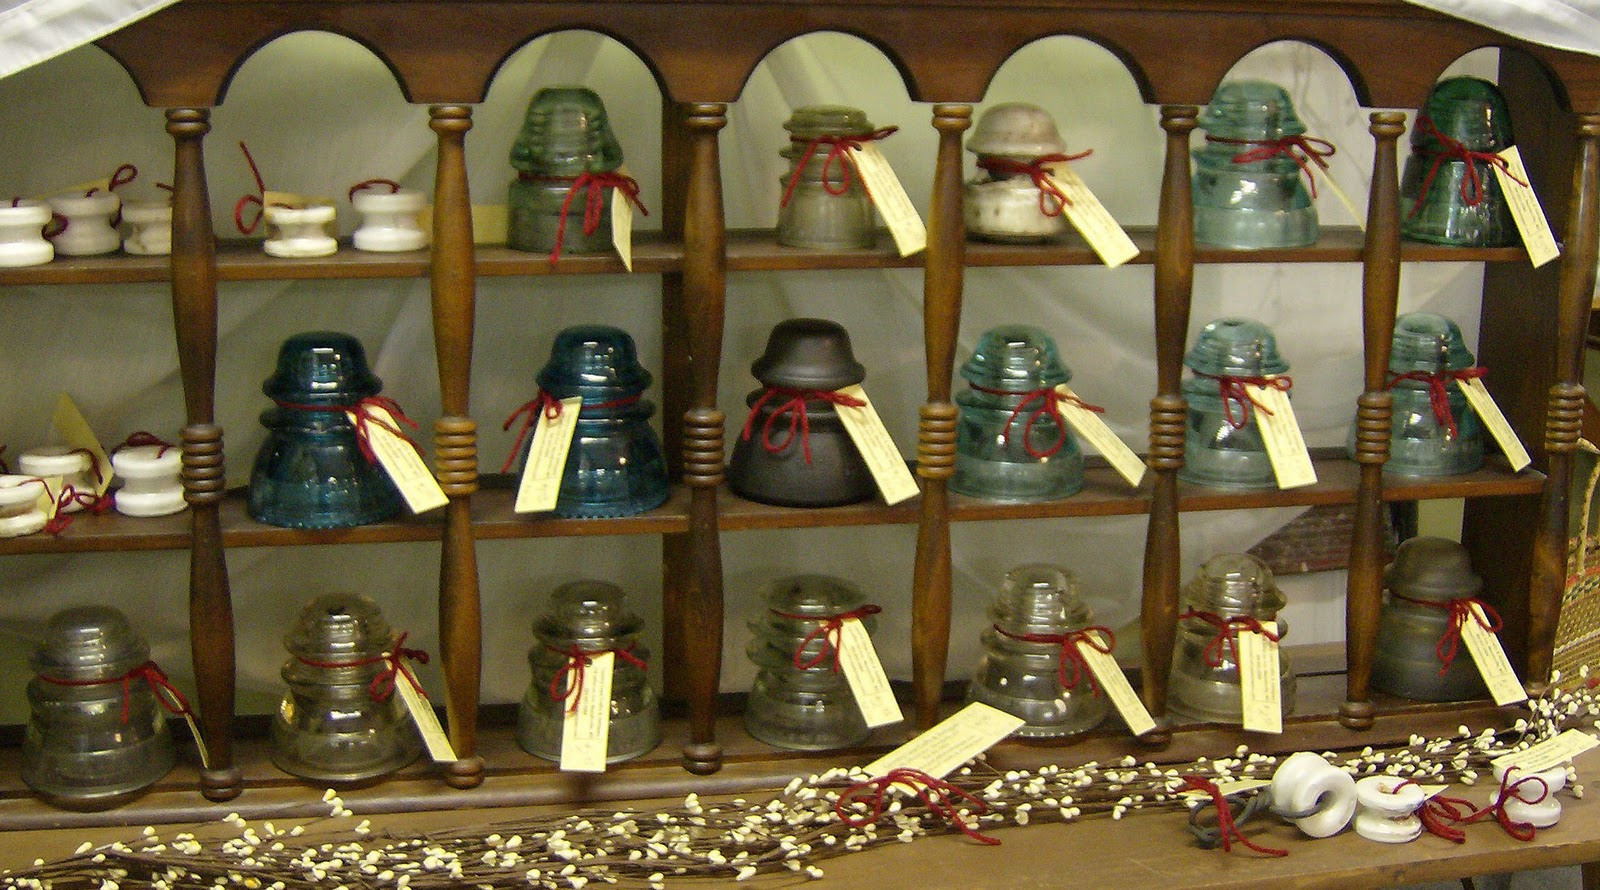 Country Lane Crafts & Antiques: Insulators and THE BIG EVENT